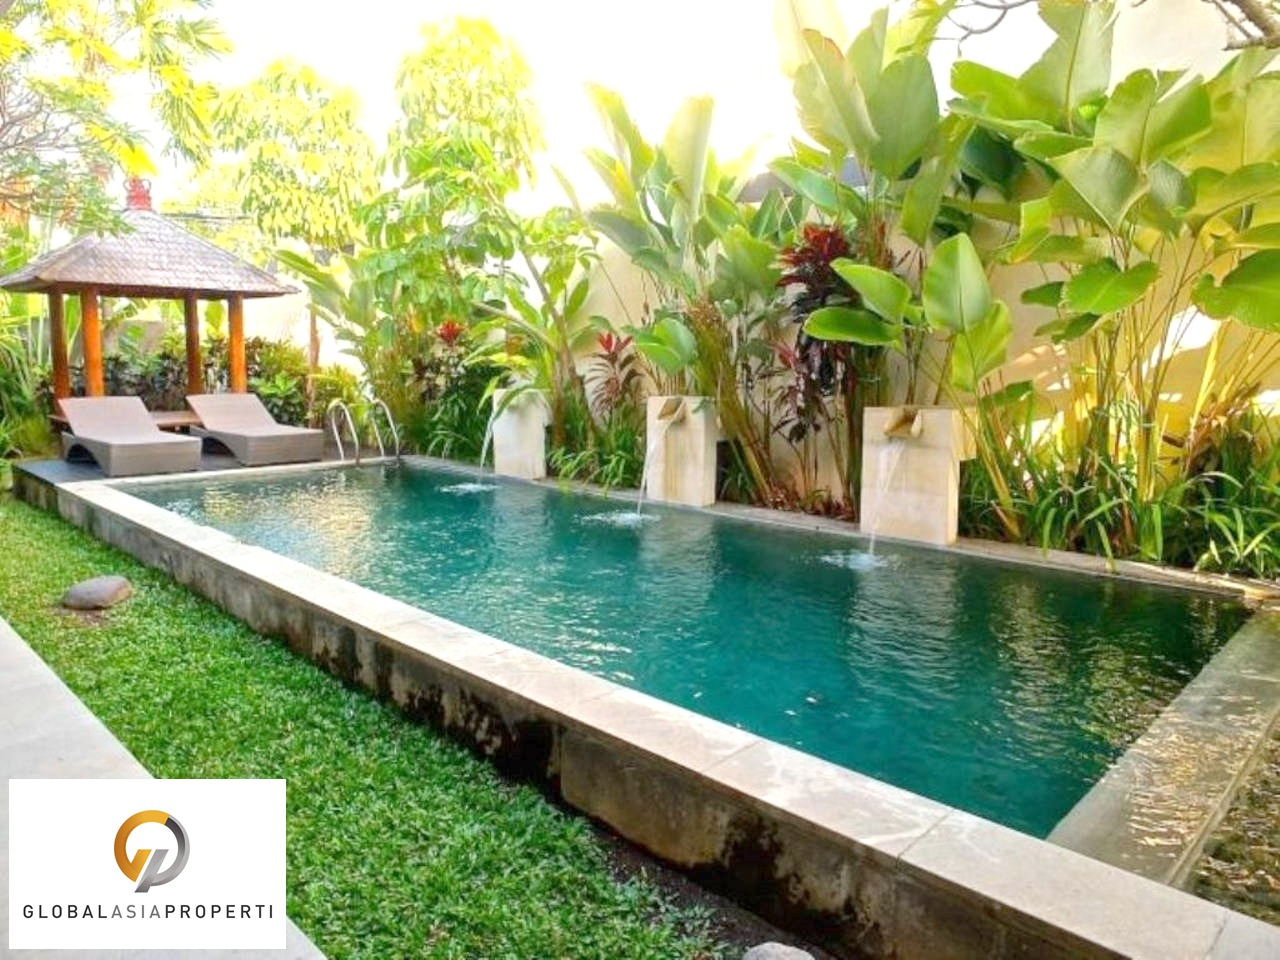 3fcedbb4 original - BEAUTIFUL THREE BEDROOMS VILLA IN AREA OF SEMINYAK FOR SALE